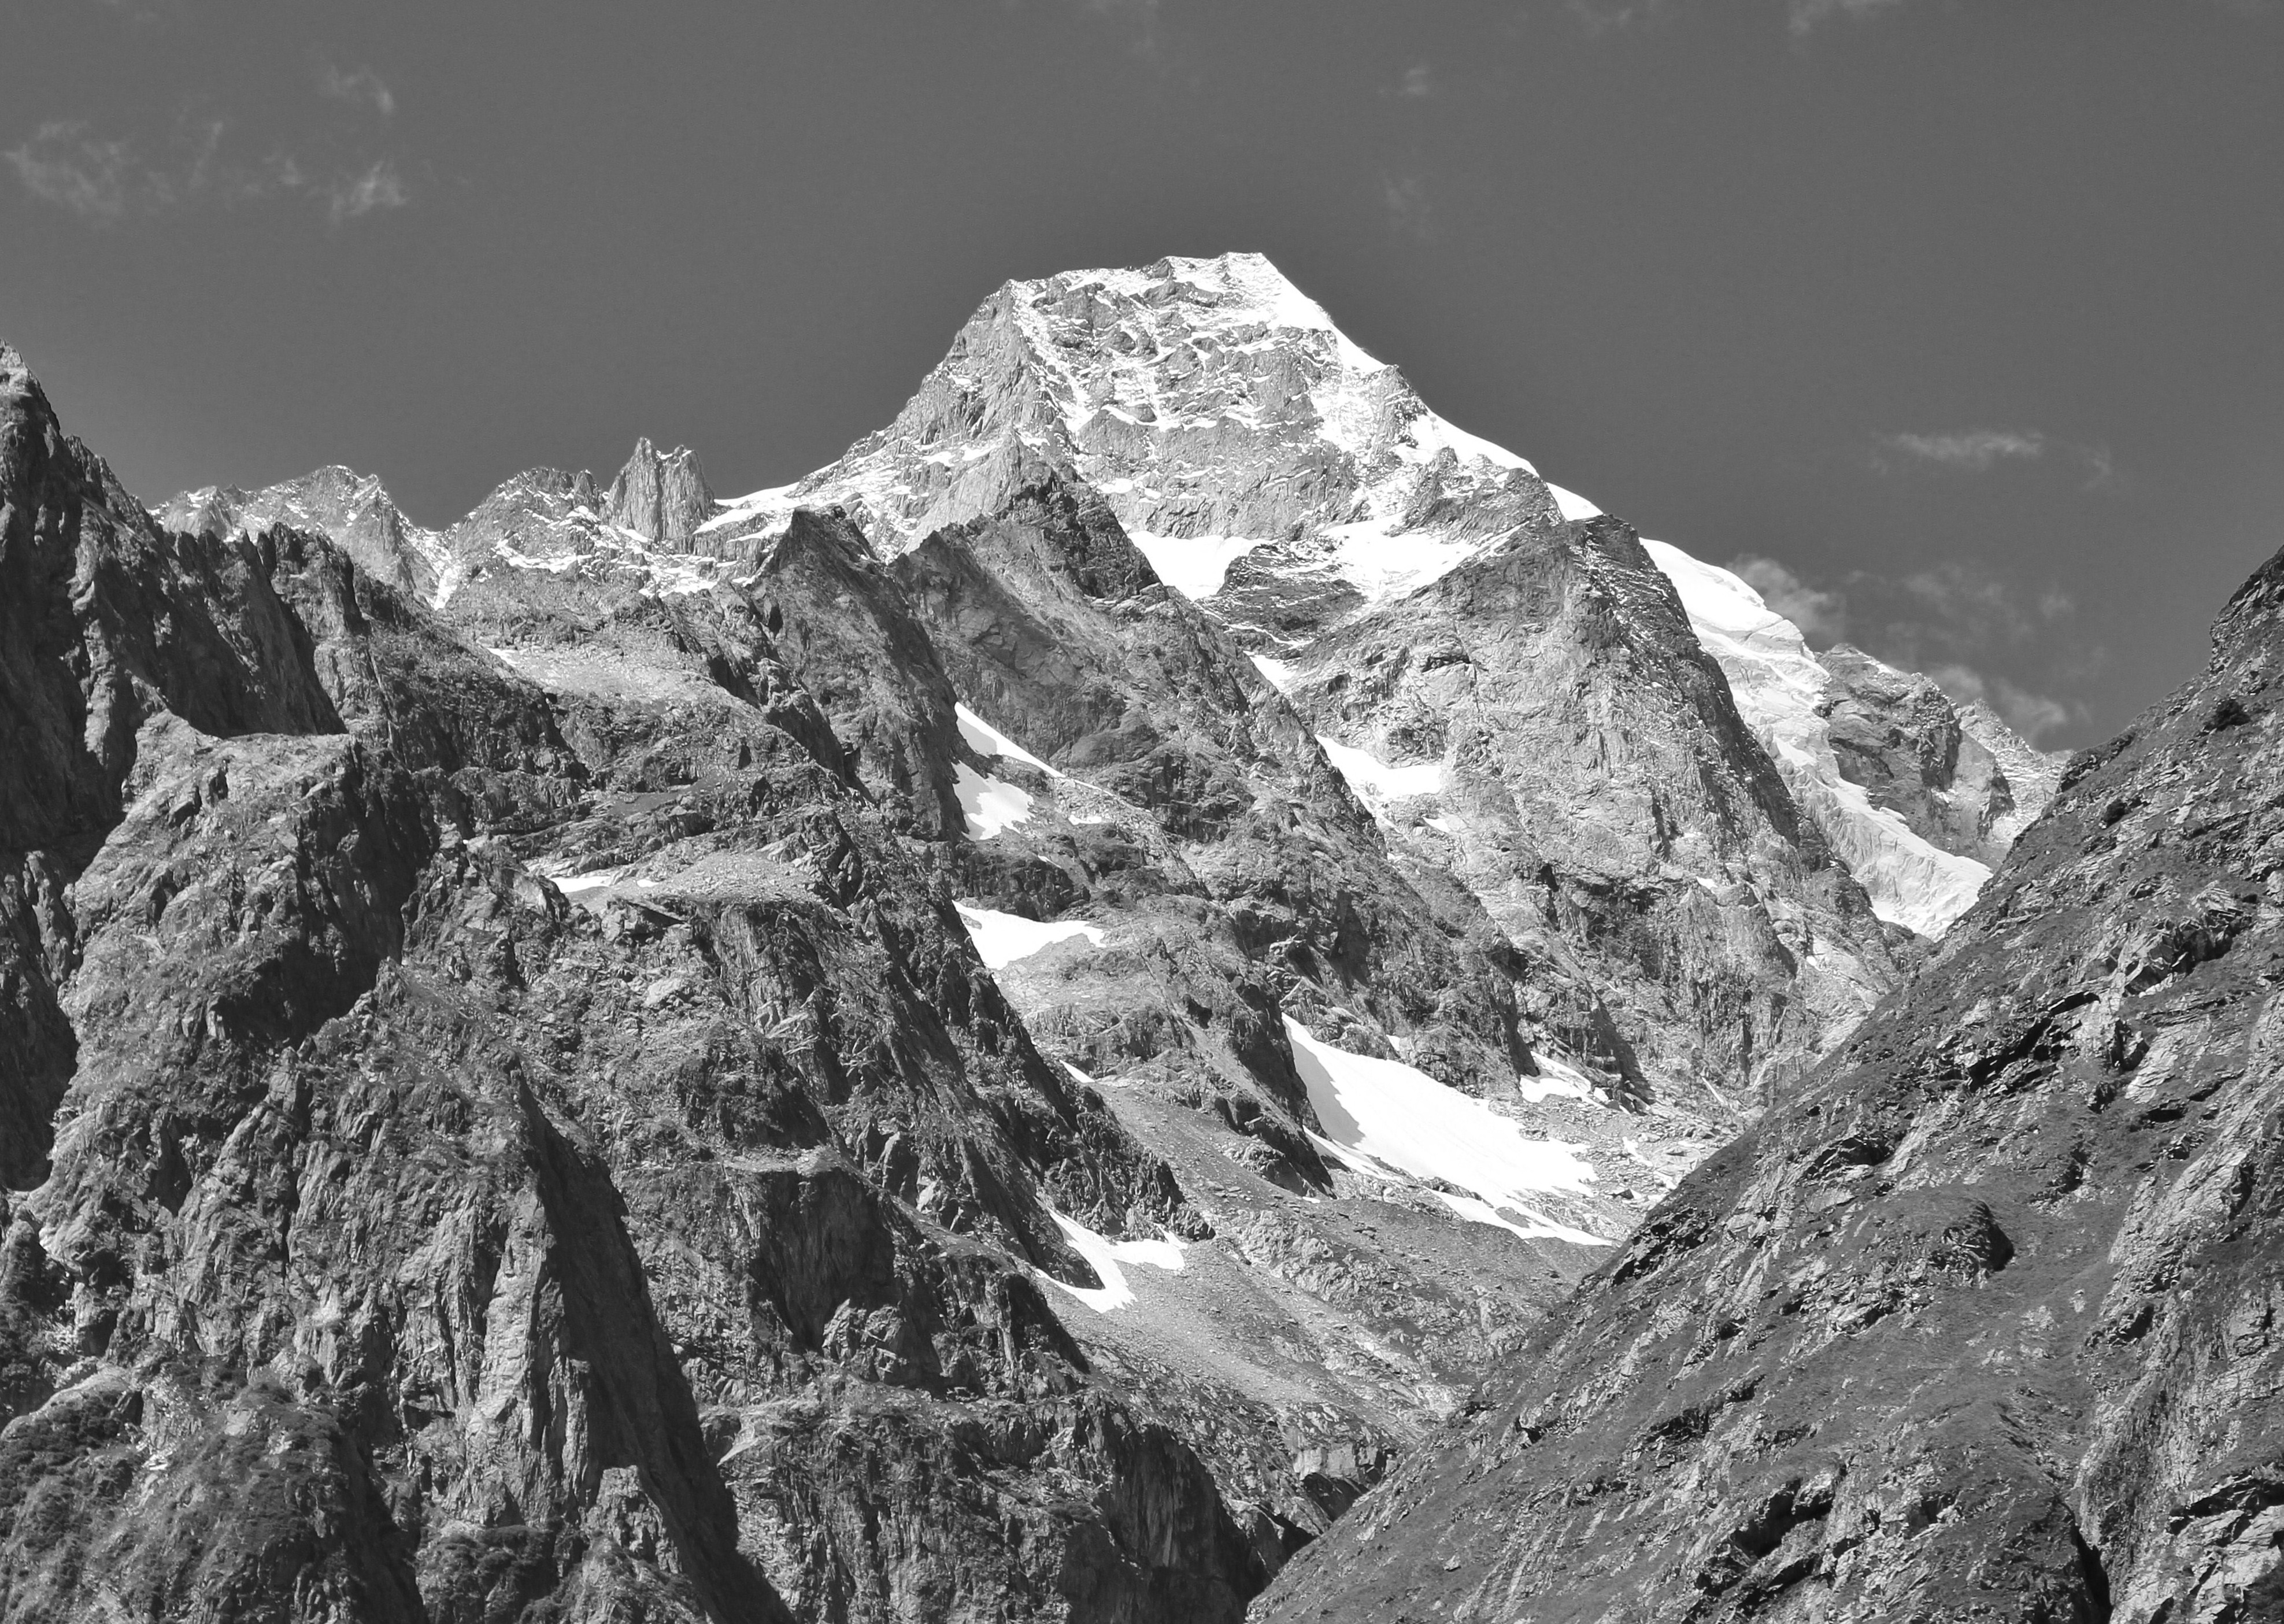 Mont Dolent from Swiss Val Ferret, 2010 August, bw 2